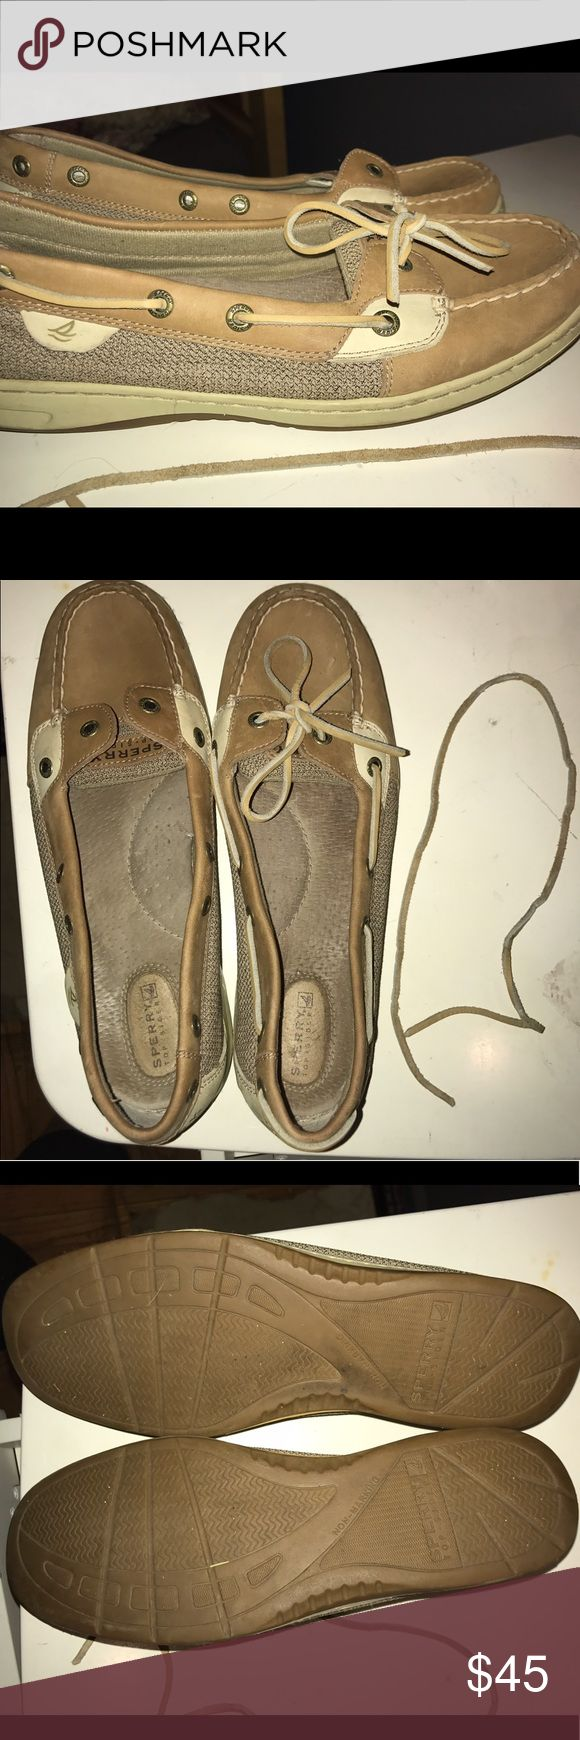 Sperry women angelfish boat shoe size 10 Says they're 10W, but they're not really wide. Lace is out of the left shoe but can be put back in. Lightly worn. No scent whatsoever. Very good condition Sperry Top-Sider Shoes Flats & Loafers